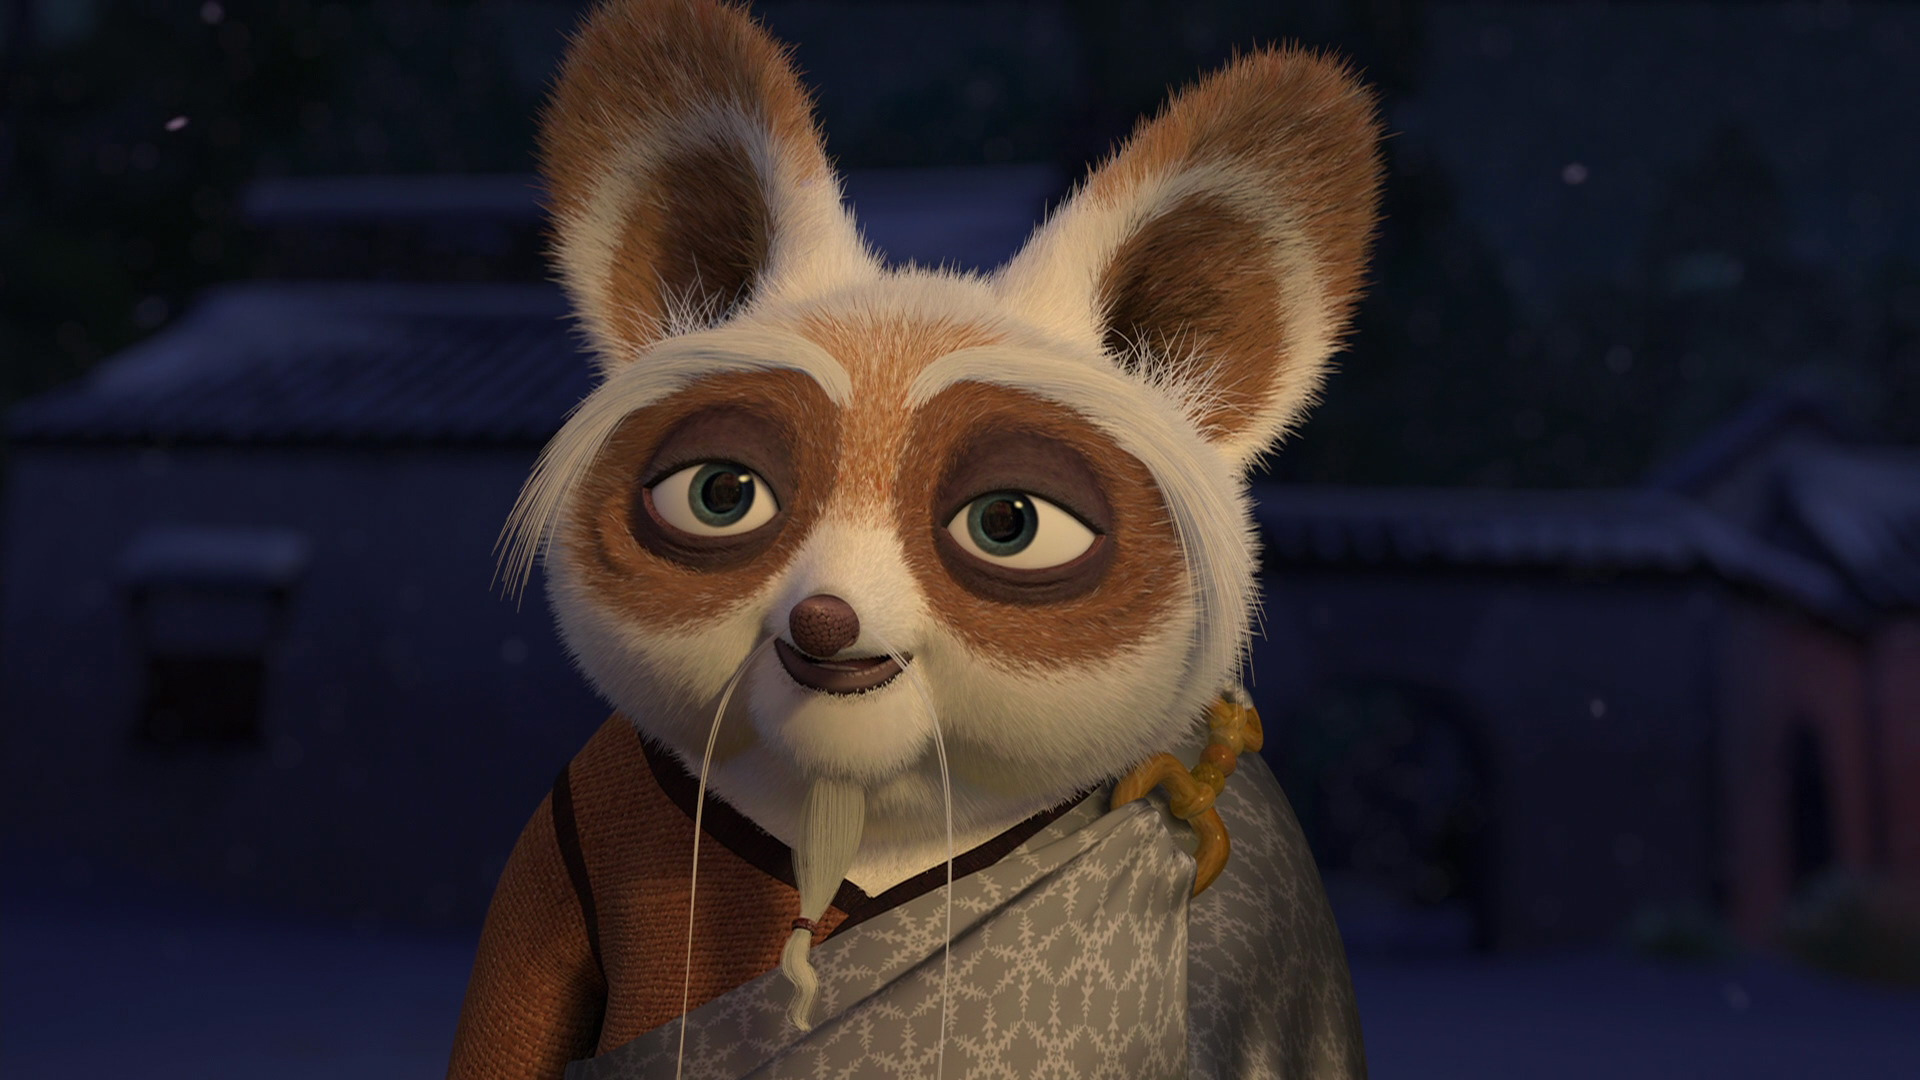 Shifu holiday - Kung fu panda shifu ...